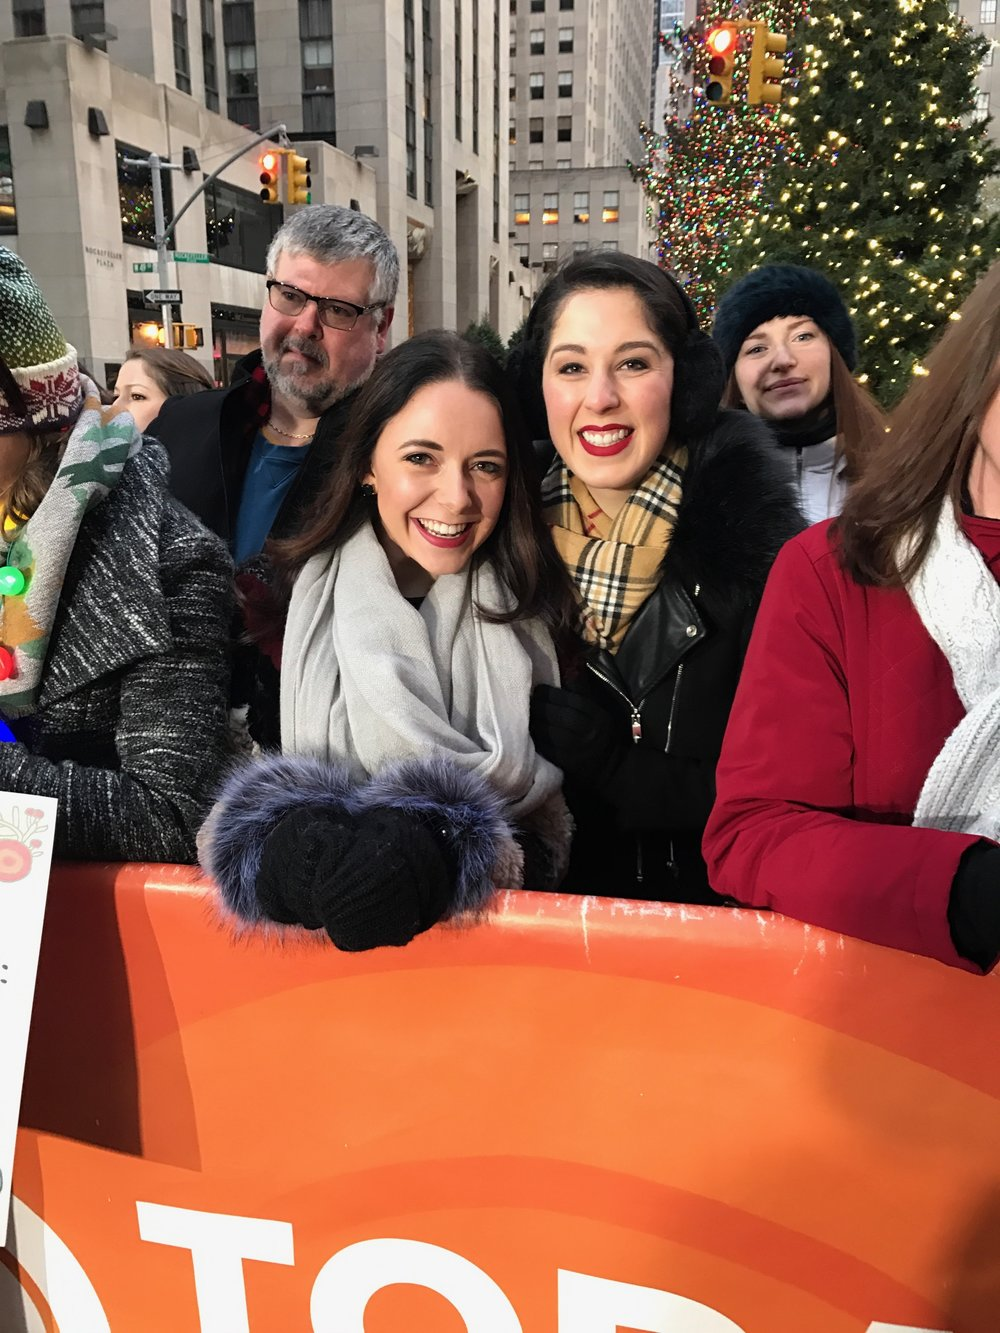 We were on the Today Show and appeared on live national television!